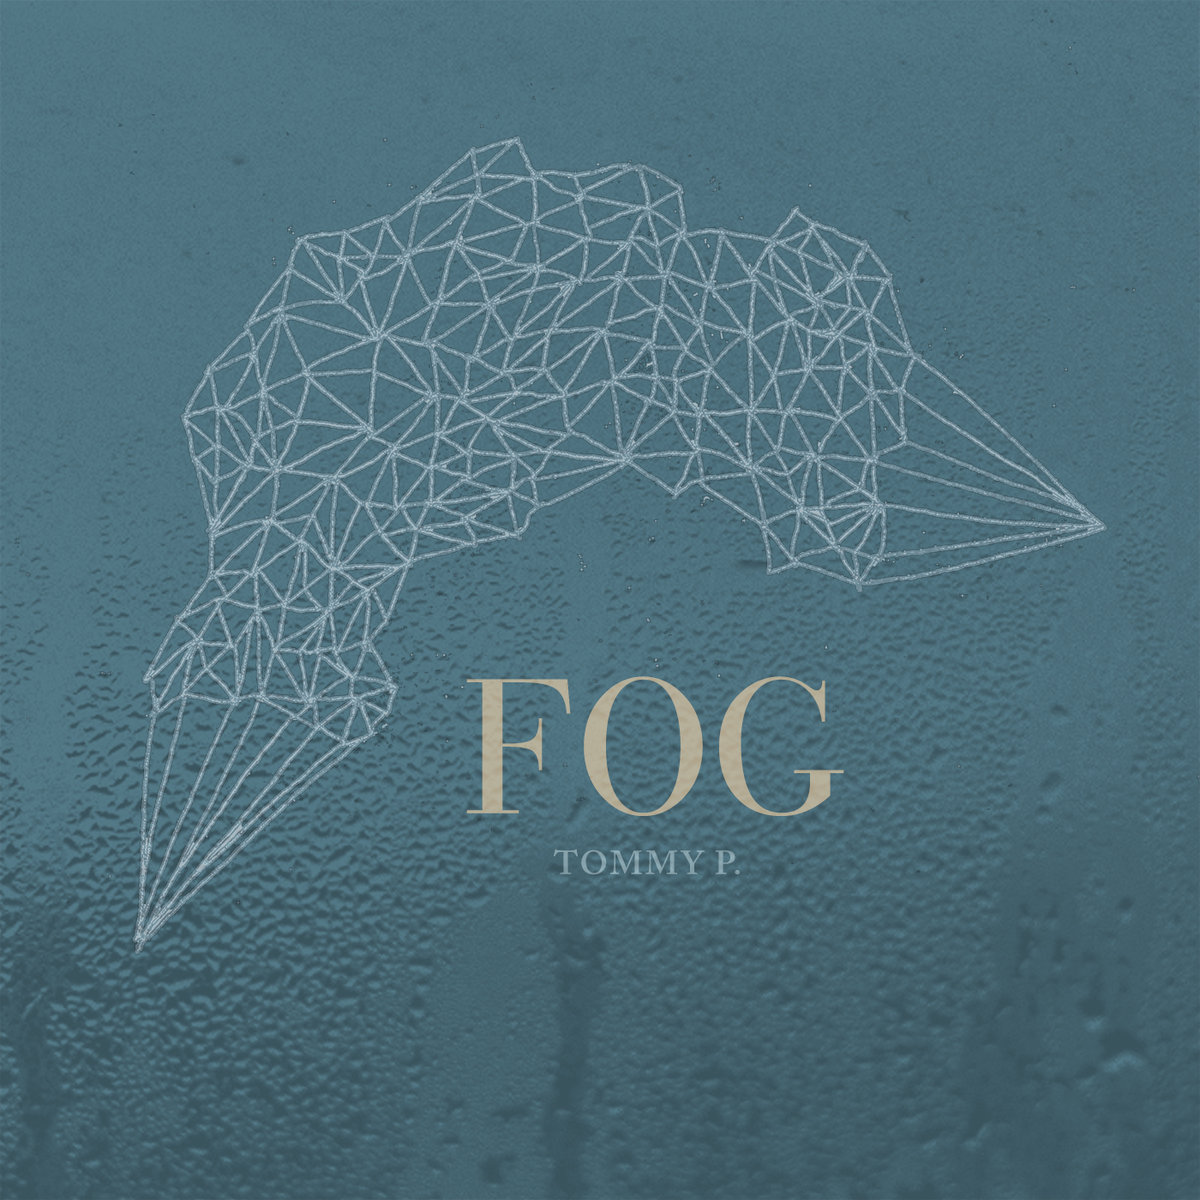 Tommy P. - Fog @ 'Fog' album (11th ave records, 11thaverecords 11th avenue)